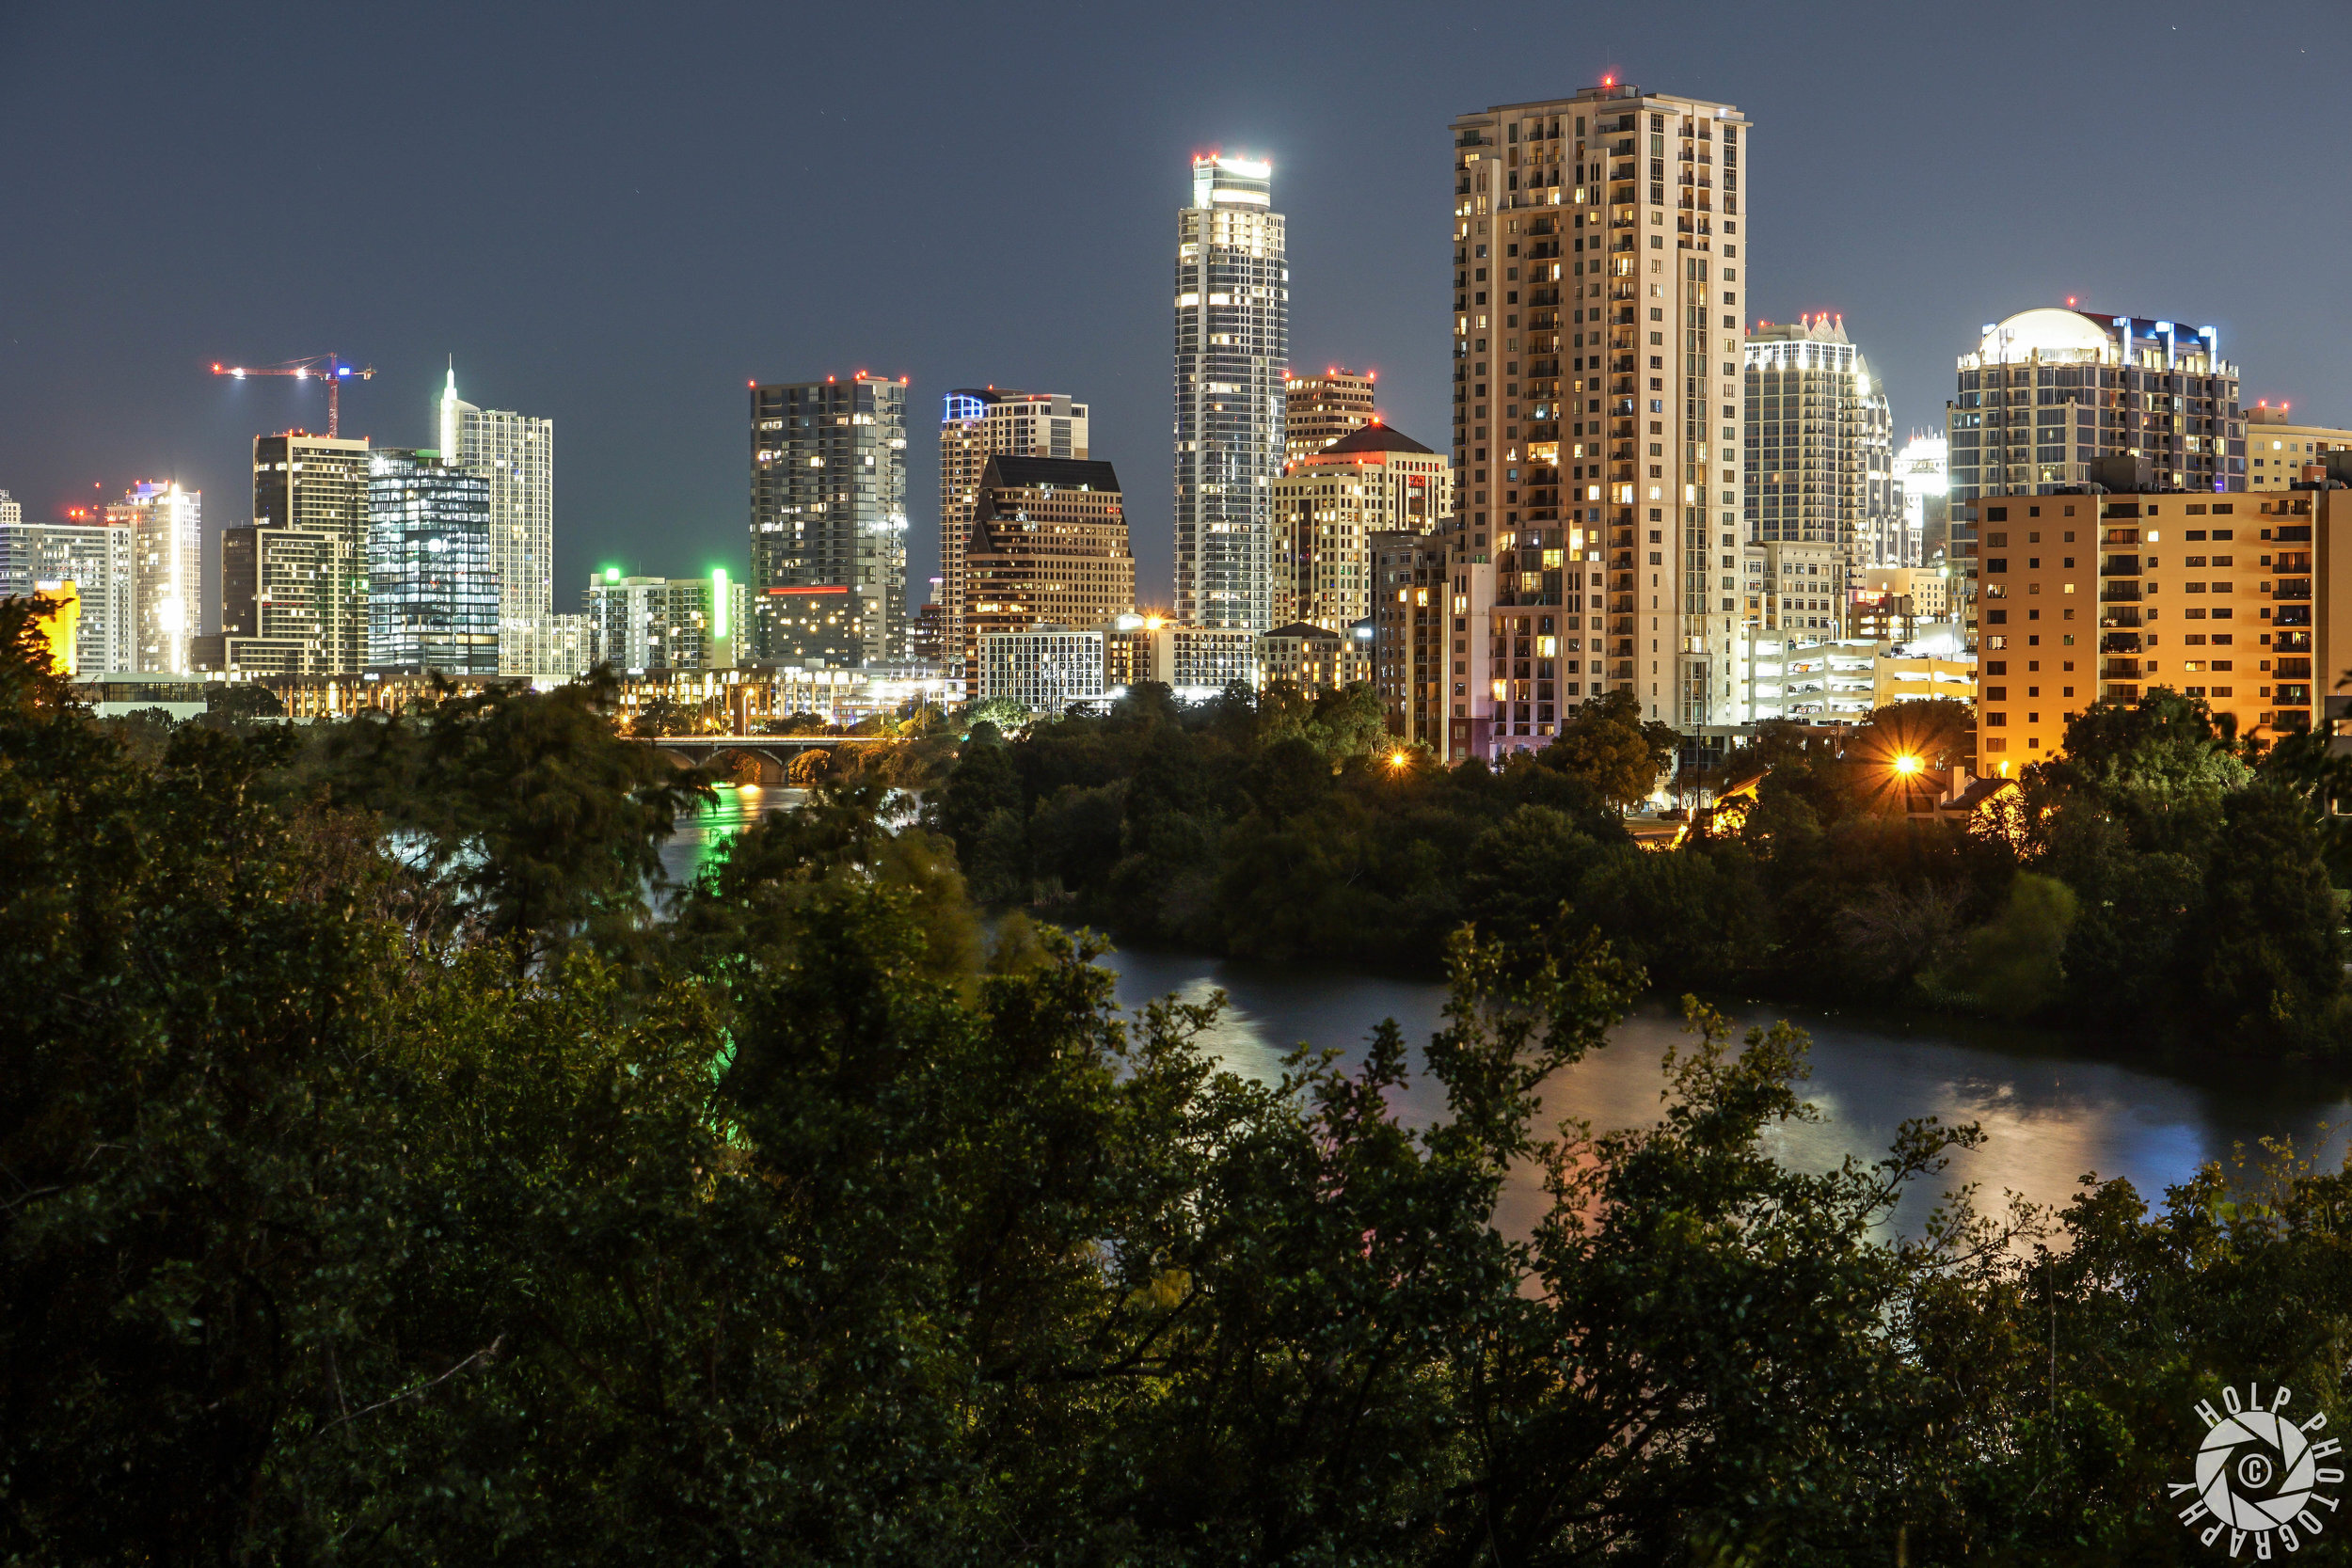 Austin-Texas-Skyline-Night-Landscape-Photography.jpg